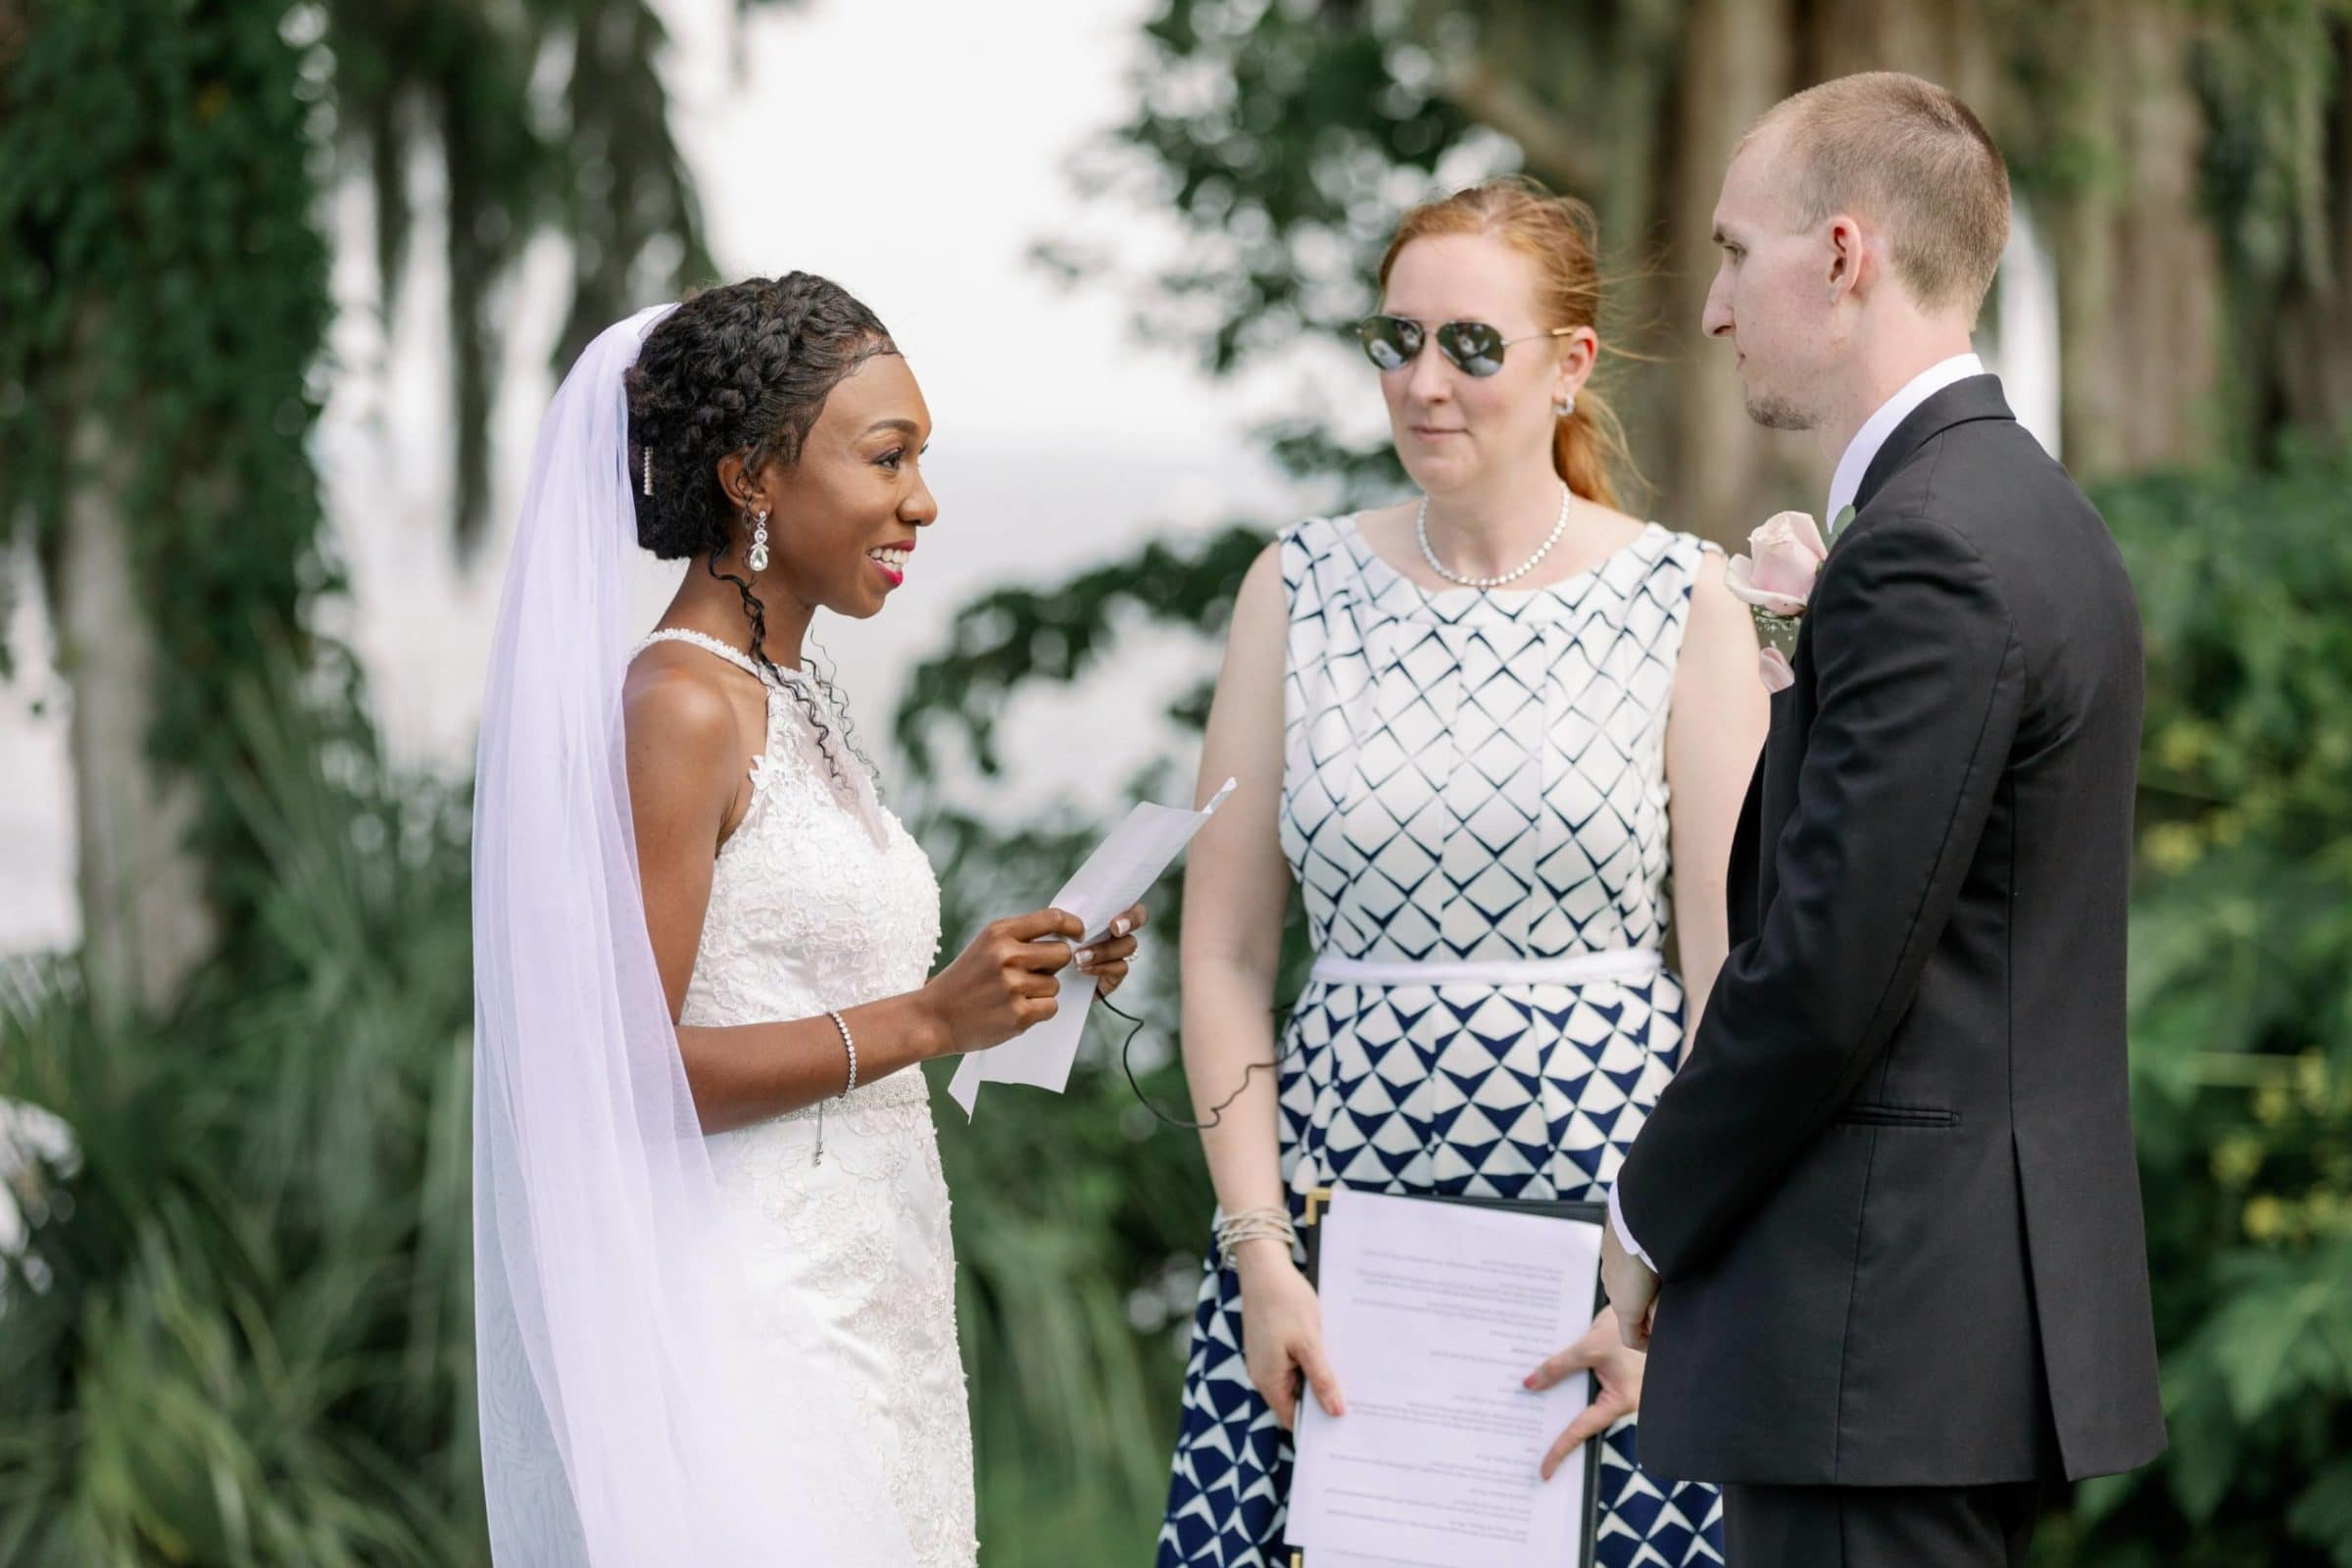 Bride and groom exchanging wedding vows with officiant lakeside